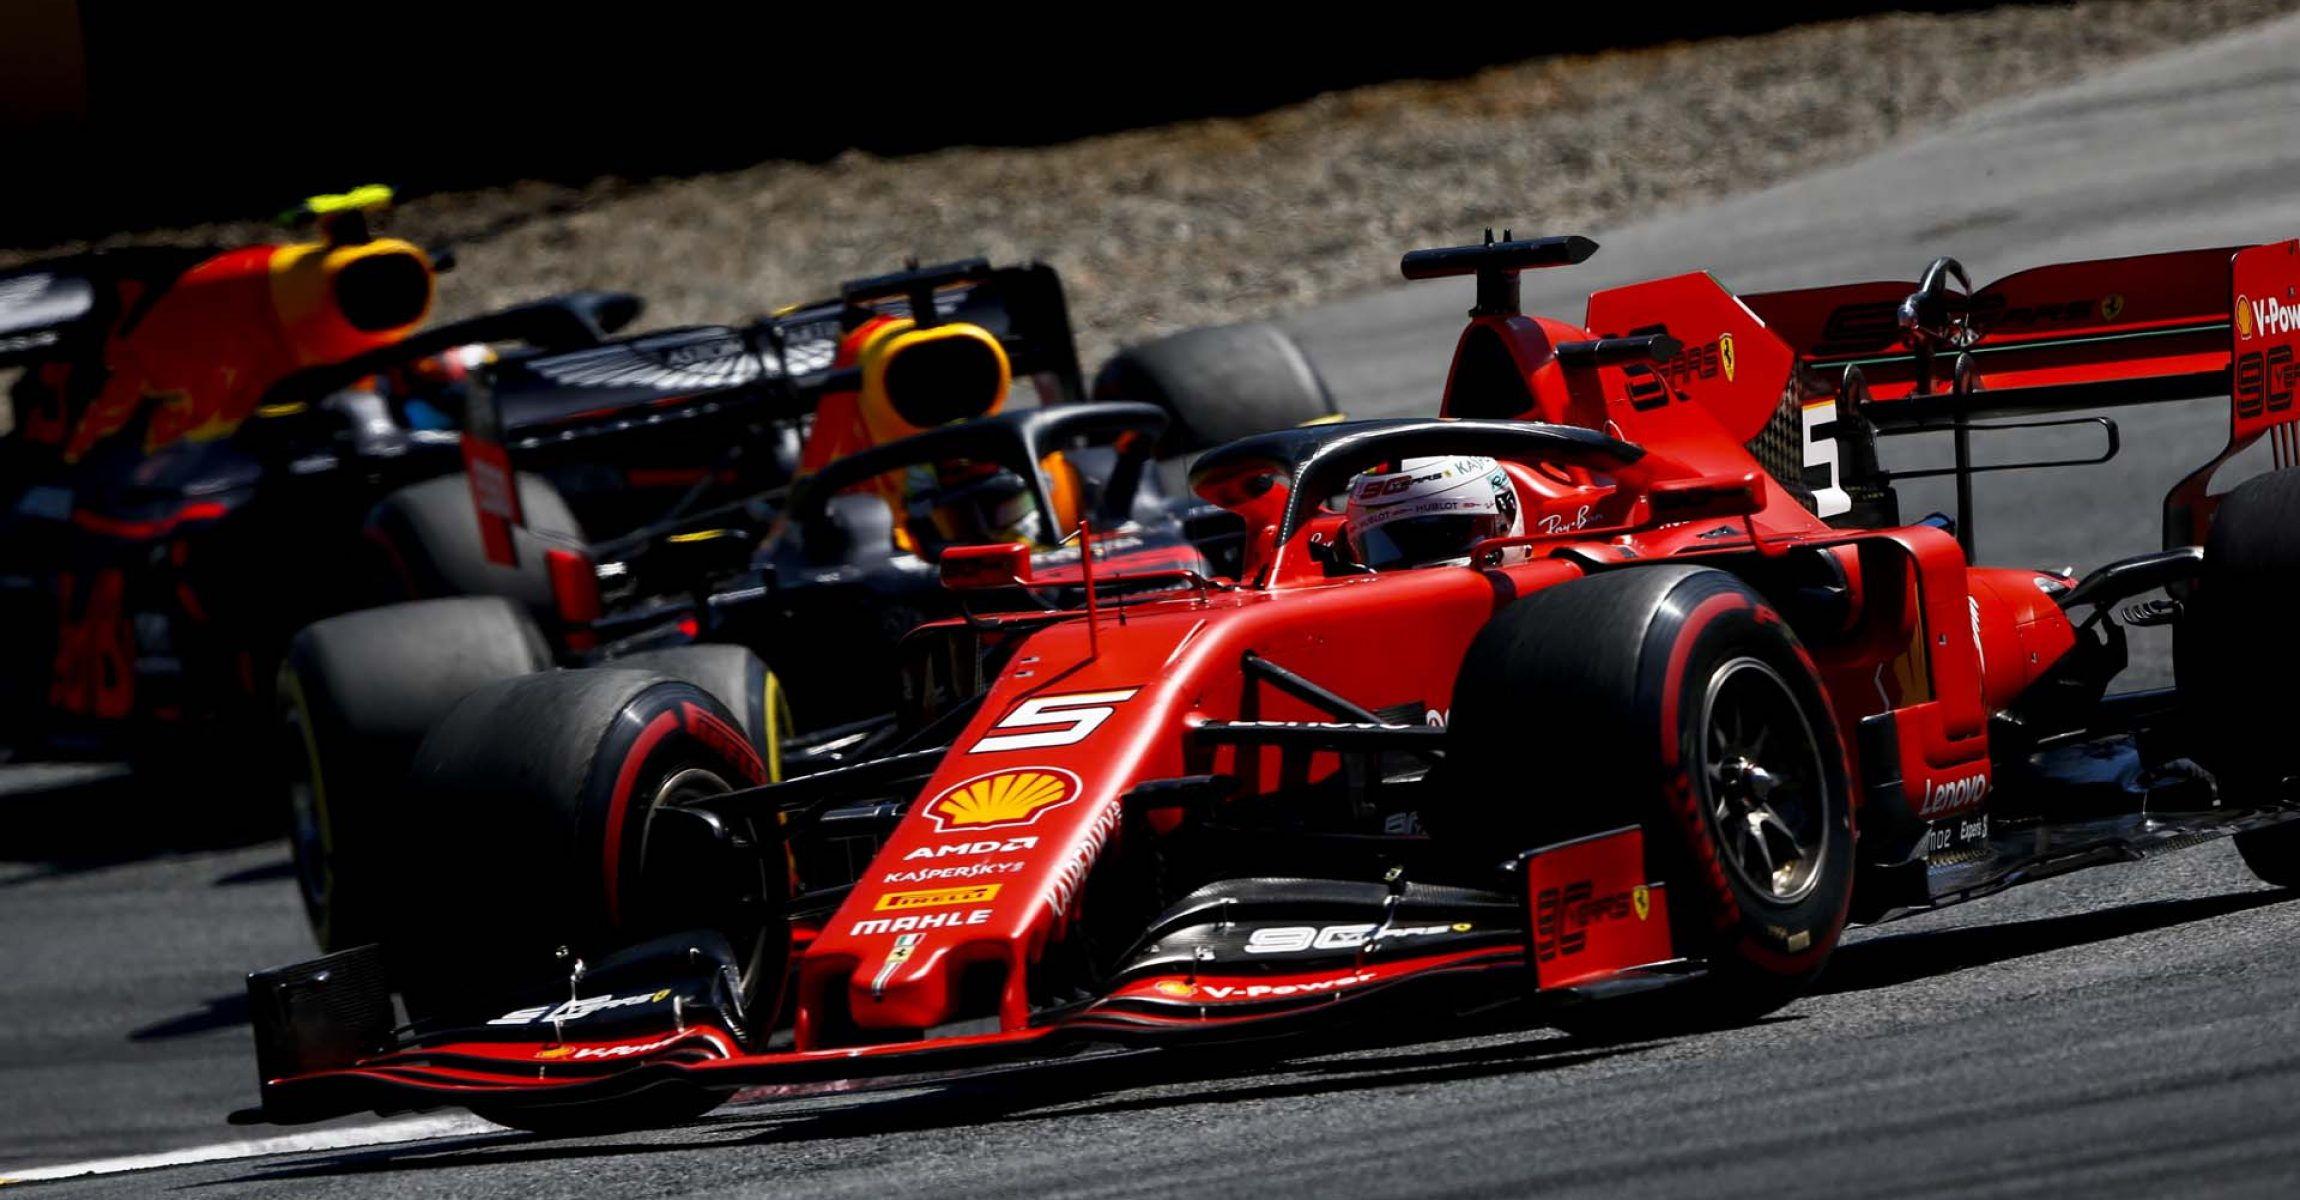 RED BULL RING, AUSTRIA - JUNE 30: Sebastian Vettel, Ferrari SF90, leads Pierre Gasly, Red Bull Racing RB15 during the Austrian GP at Red Bull Ring on June 30, 2019 in Red Bull Ring, Austria. (Photo by Andy Hone / LAT Images)